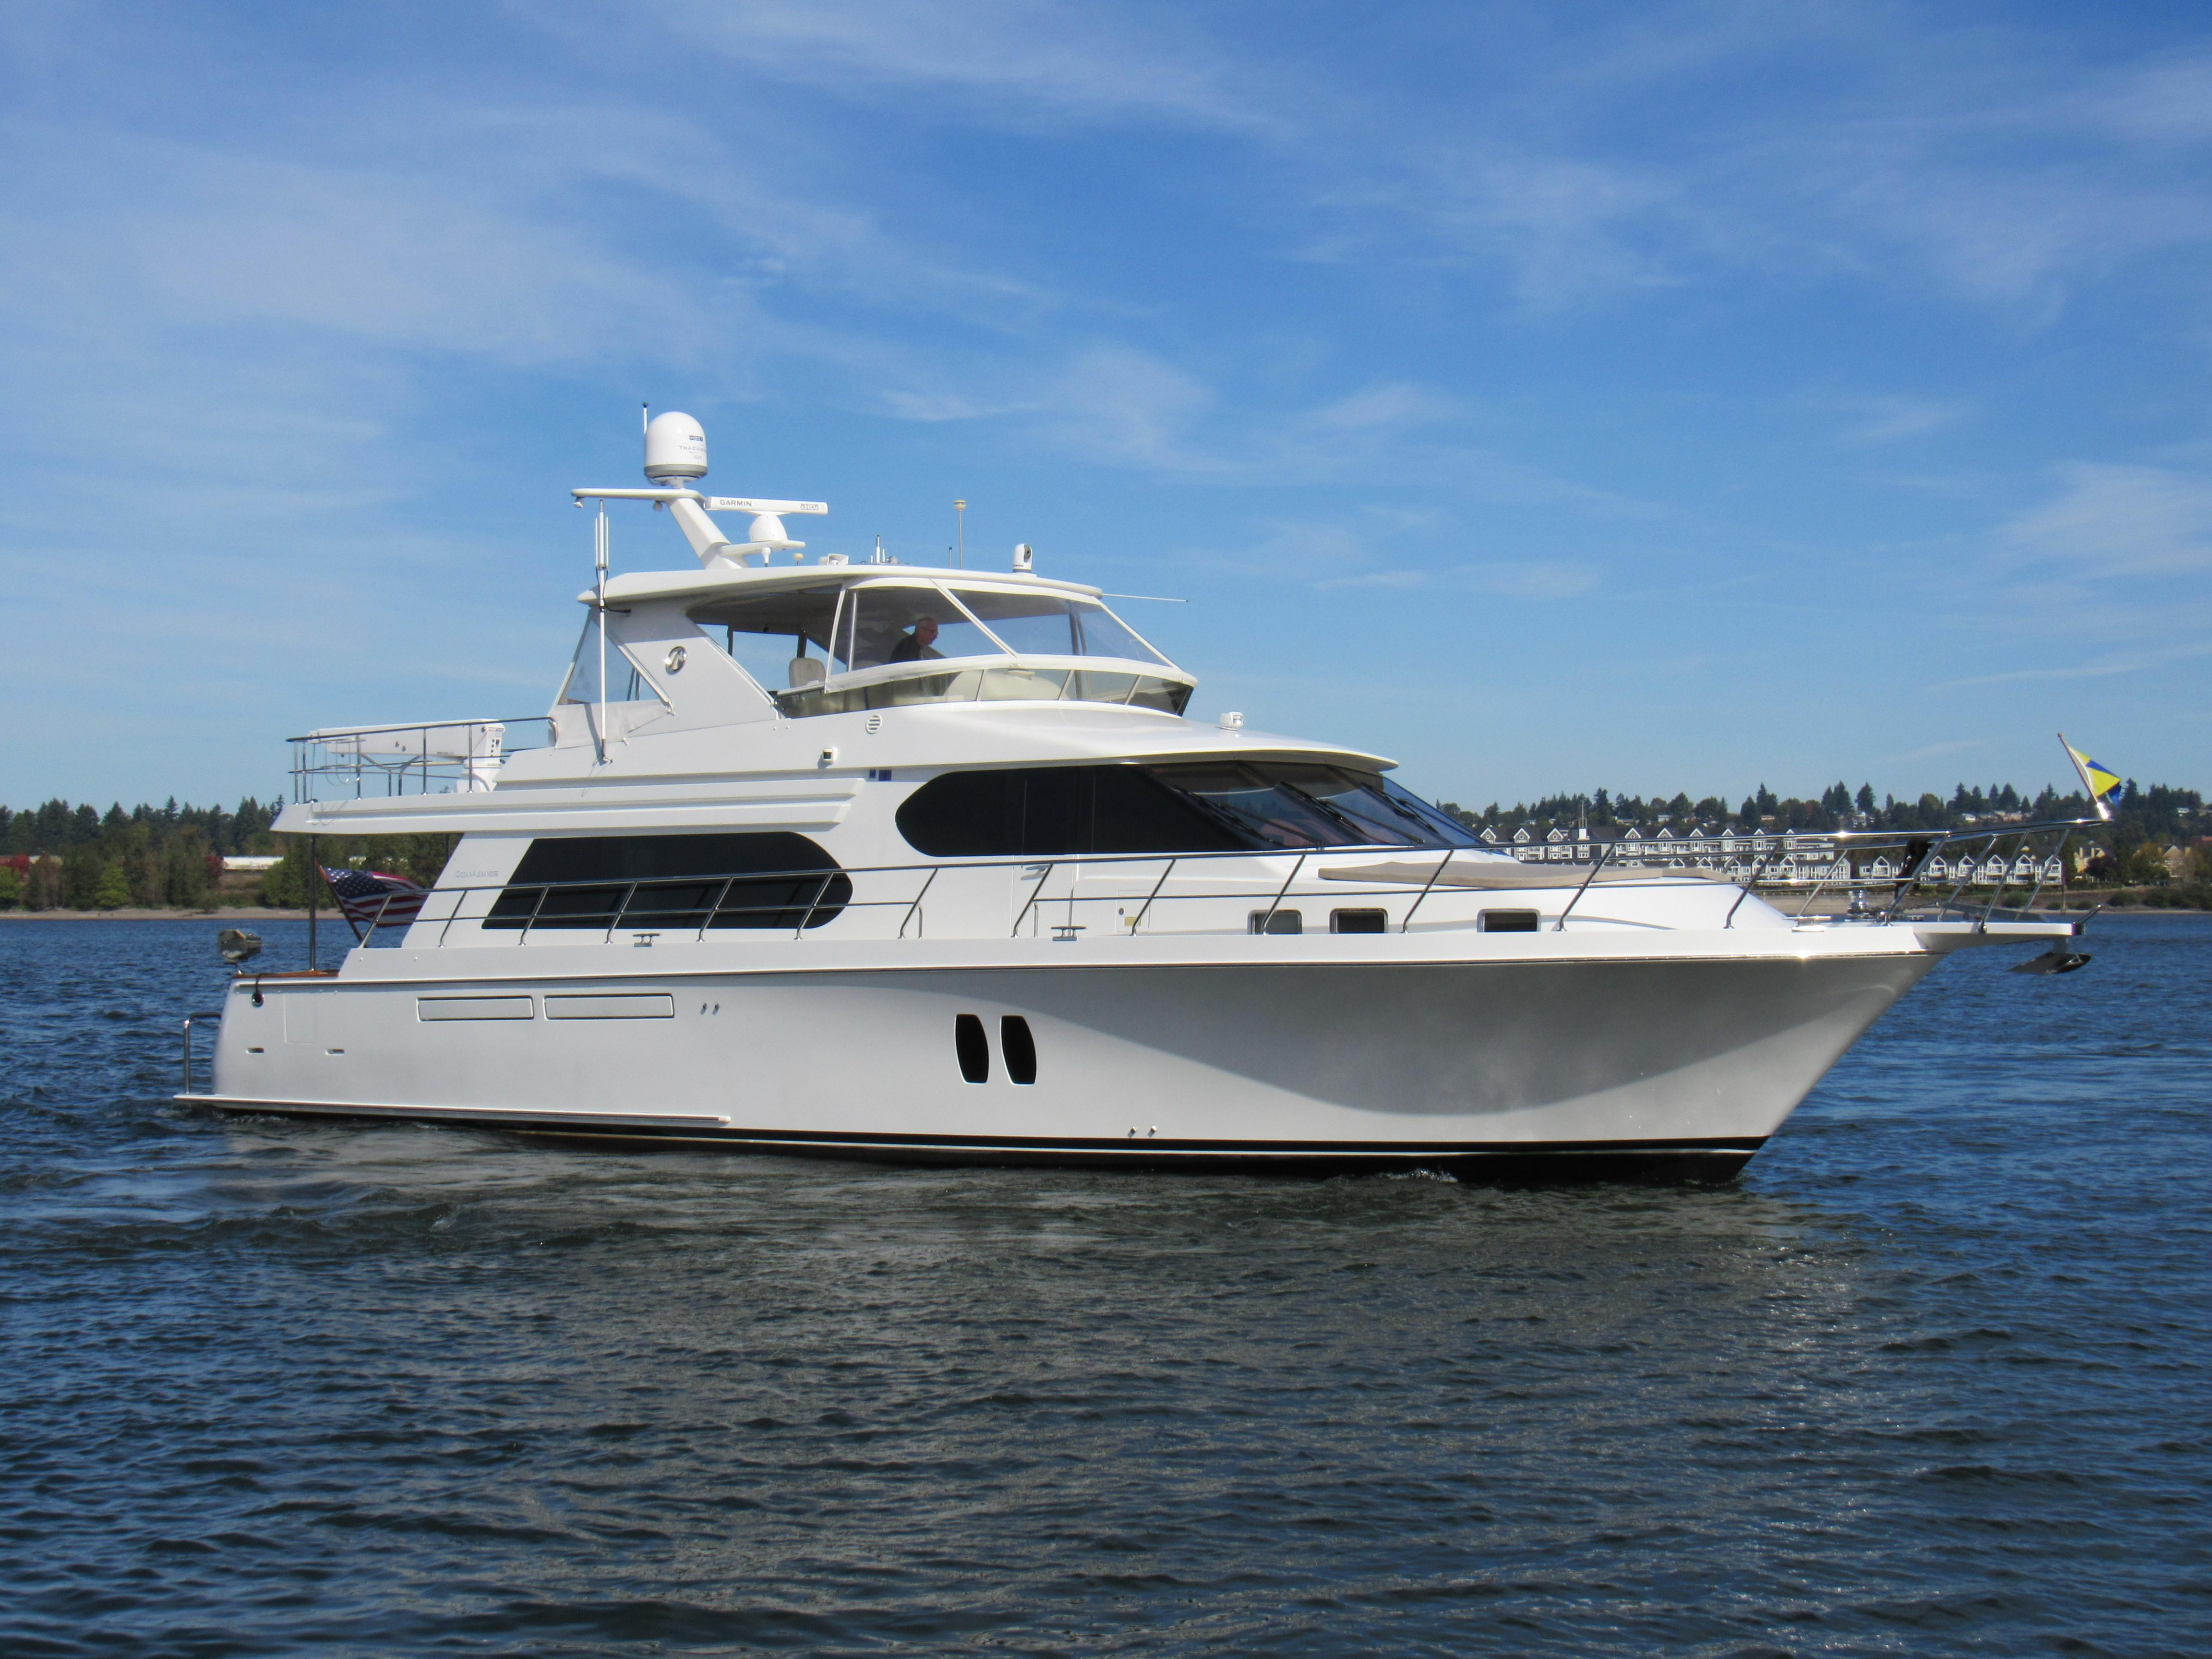 65 Pilothouse - 50 North